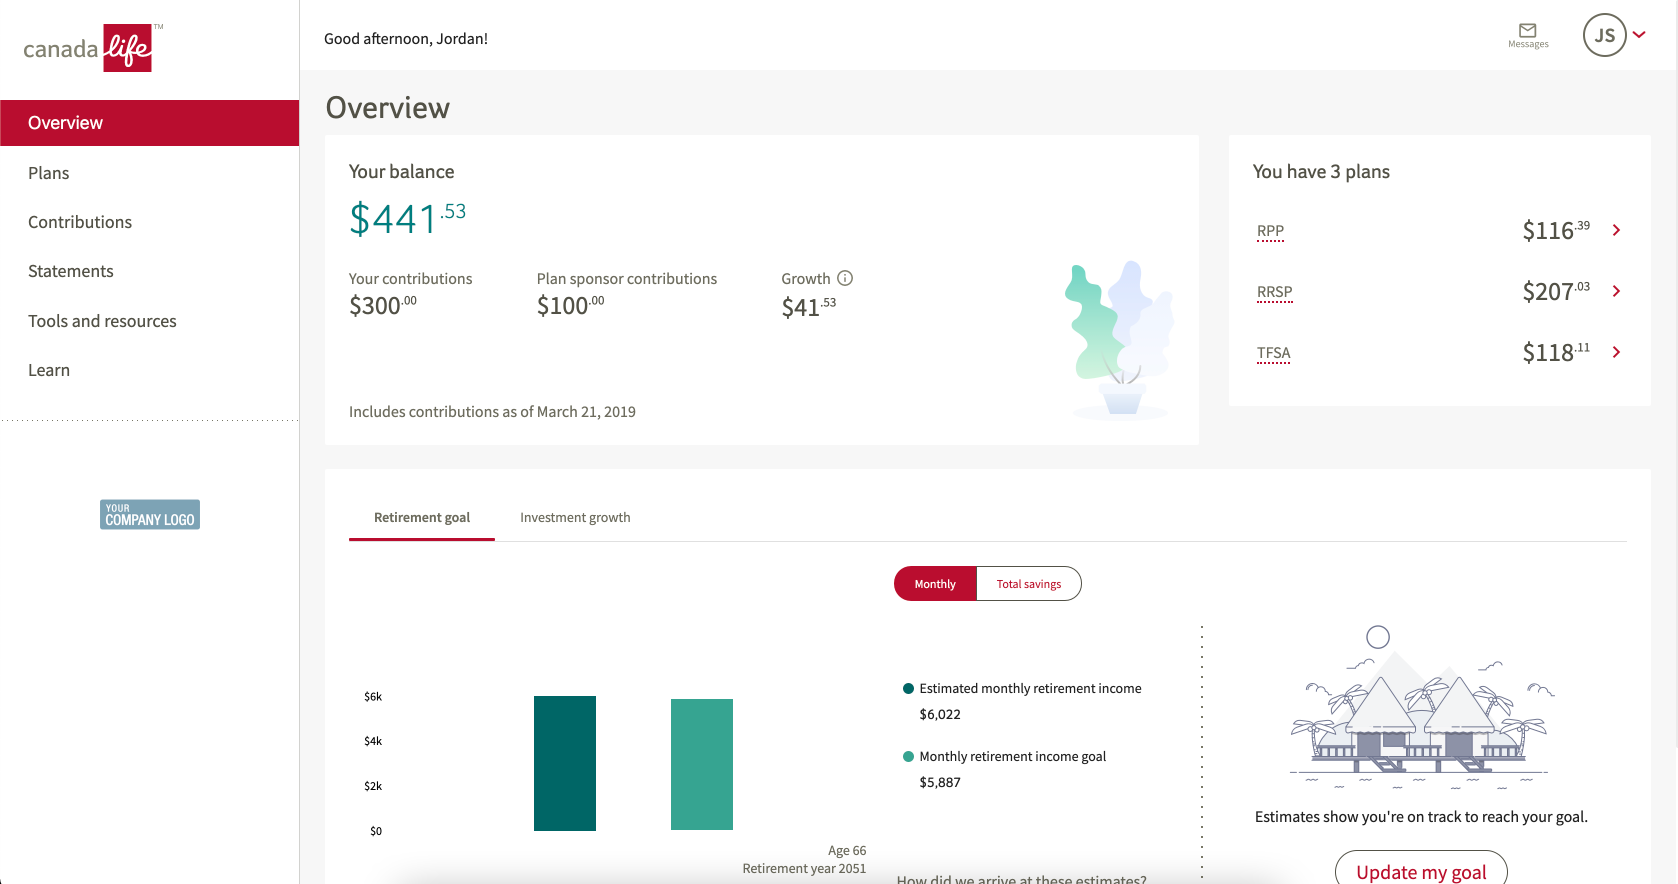 GRS Access shows the savings you have through your work. The main page is an overview displaying your balance, your plans, investment growth and info about setting a retirement goal.